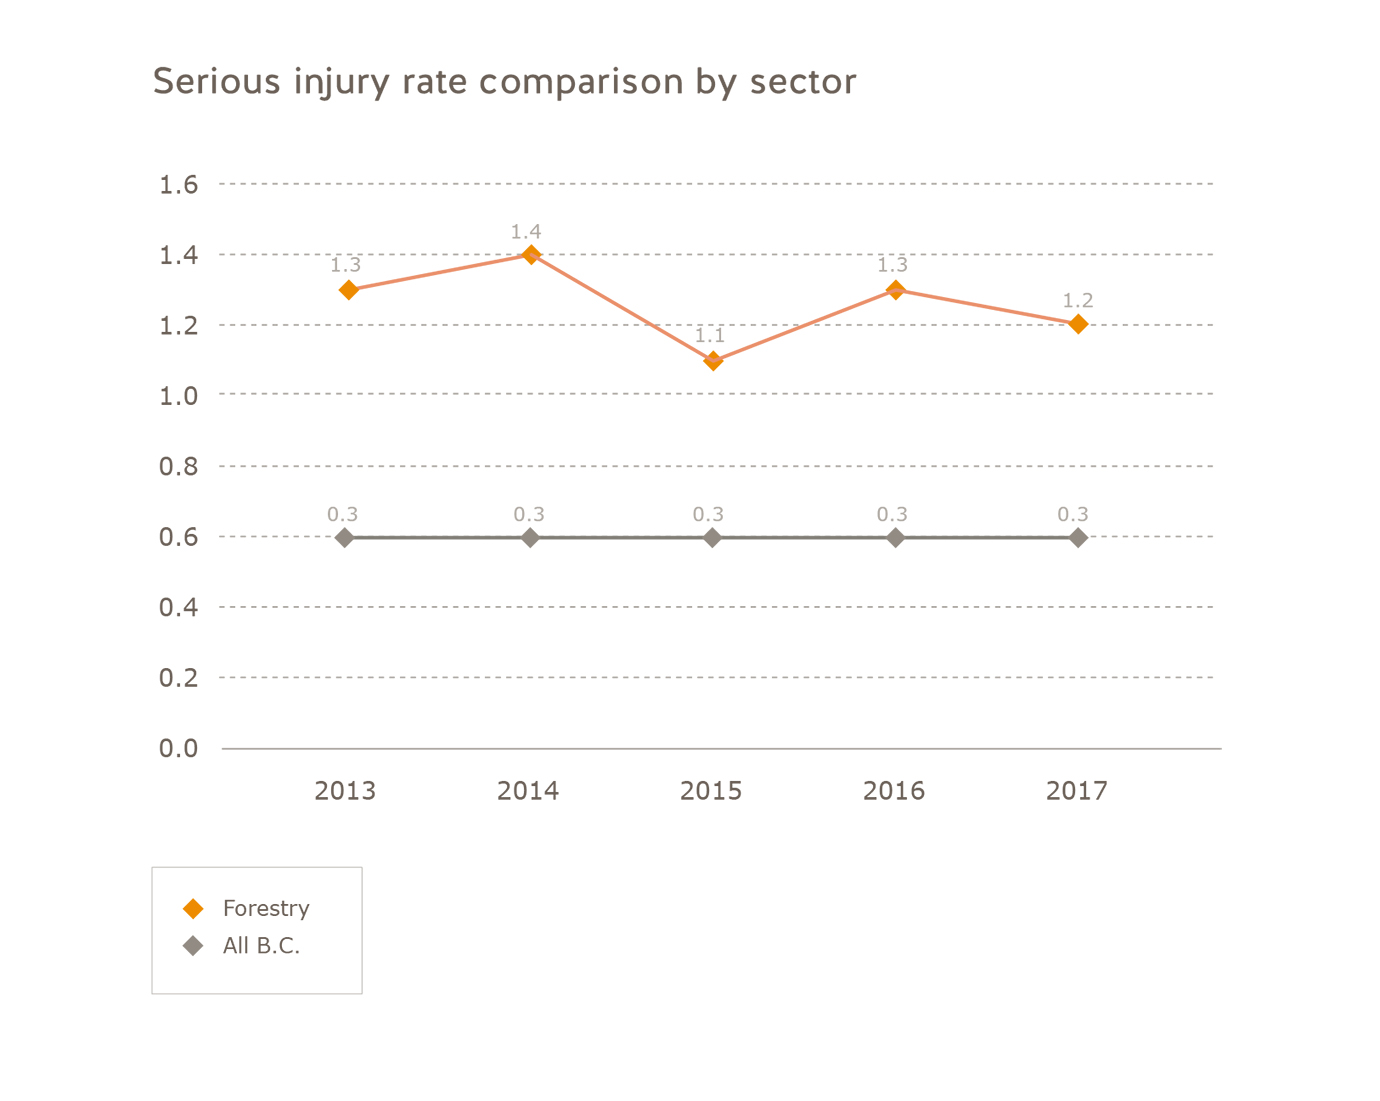 Serious injury rate comparison forestry industry 2013 to 2017. Forestry: 2013 = 1.3, 2014 = 1.4, 2015 = 1.1, 2016 = 1.3, 2017 = 1.2. All of B.C.: 2013 = 0.3, 2014 = 0.3, 2015 = 0.3, 2016 = 0.3, 2017 = 0.3.